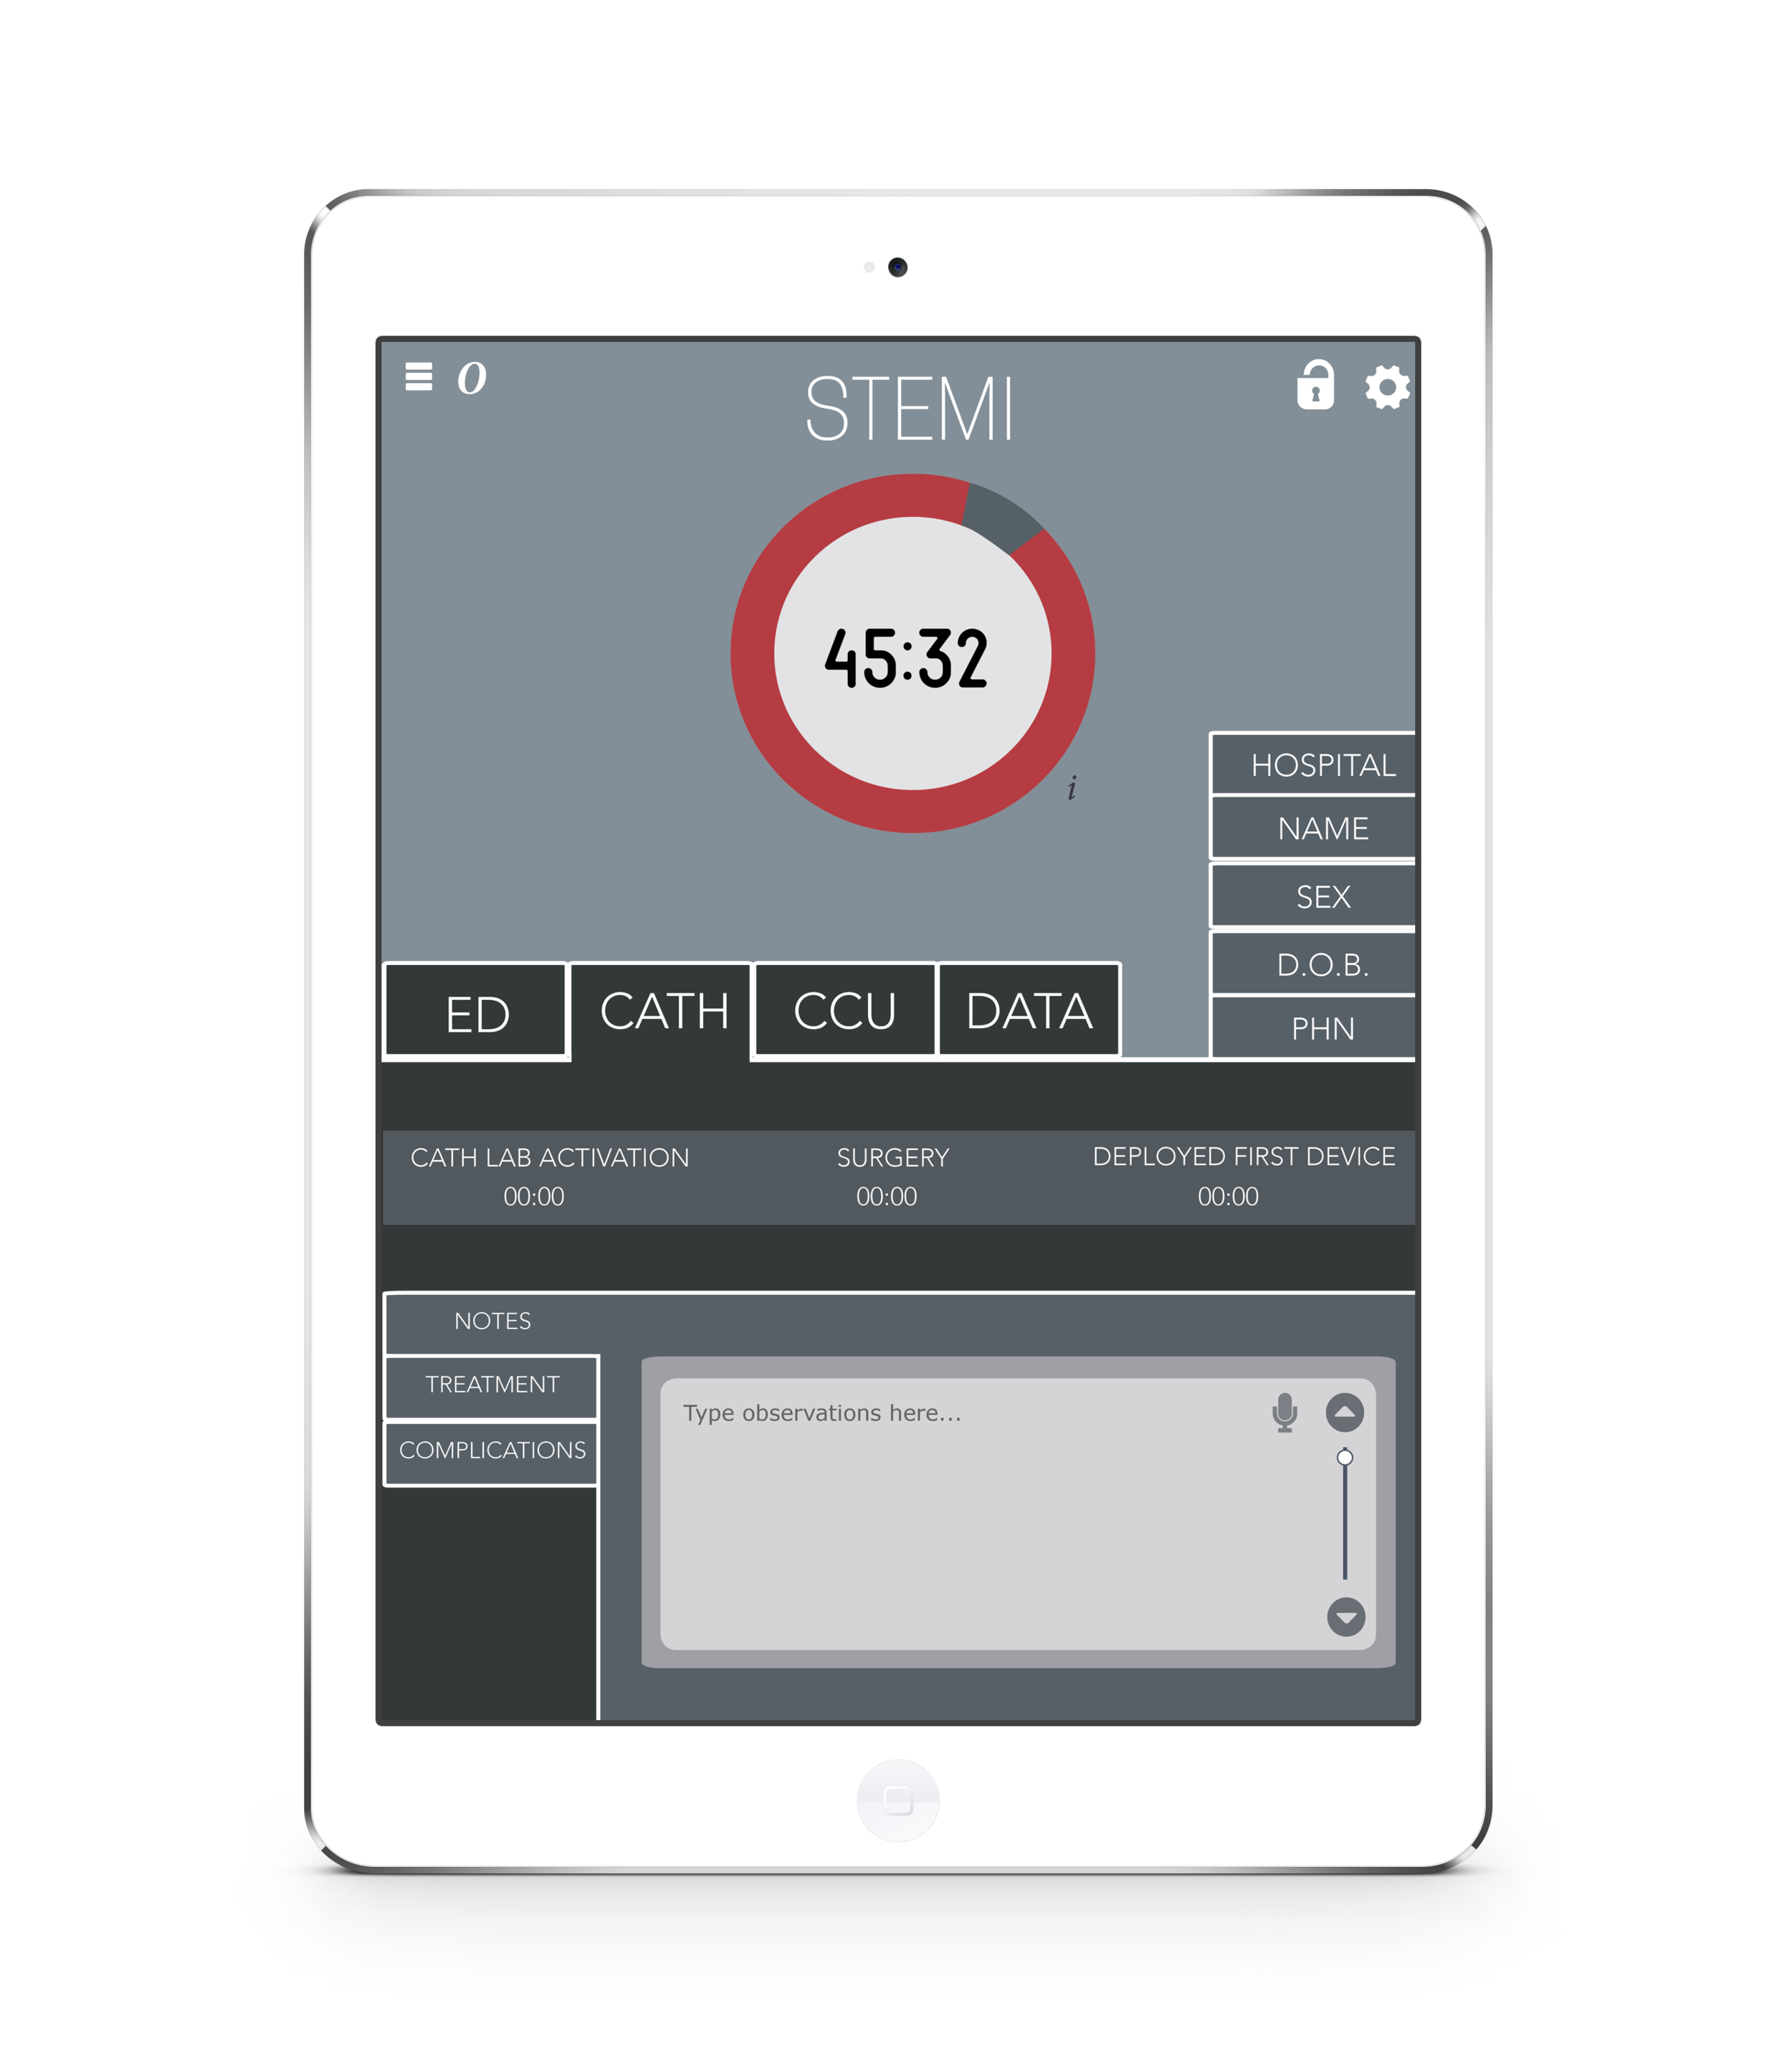 - Once the patient has been taken to a Cardiac Hospital, the patient is taken in the Cath Lab. Once the patient is admitted into the Cath Lab, the STEMI app then transitions into the Cath tab where the time of the Cath Lab Activation, Surgery and Deployment of First Device are recorded. The Medical Practitoners can voice record notes, treatment and complications.